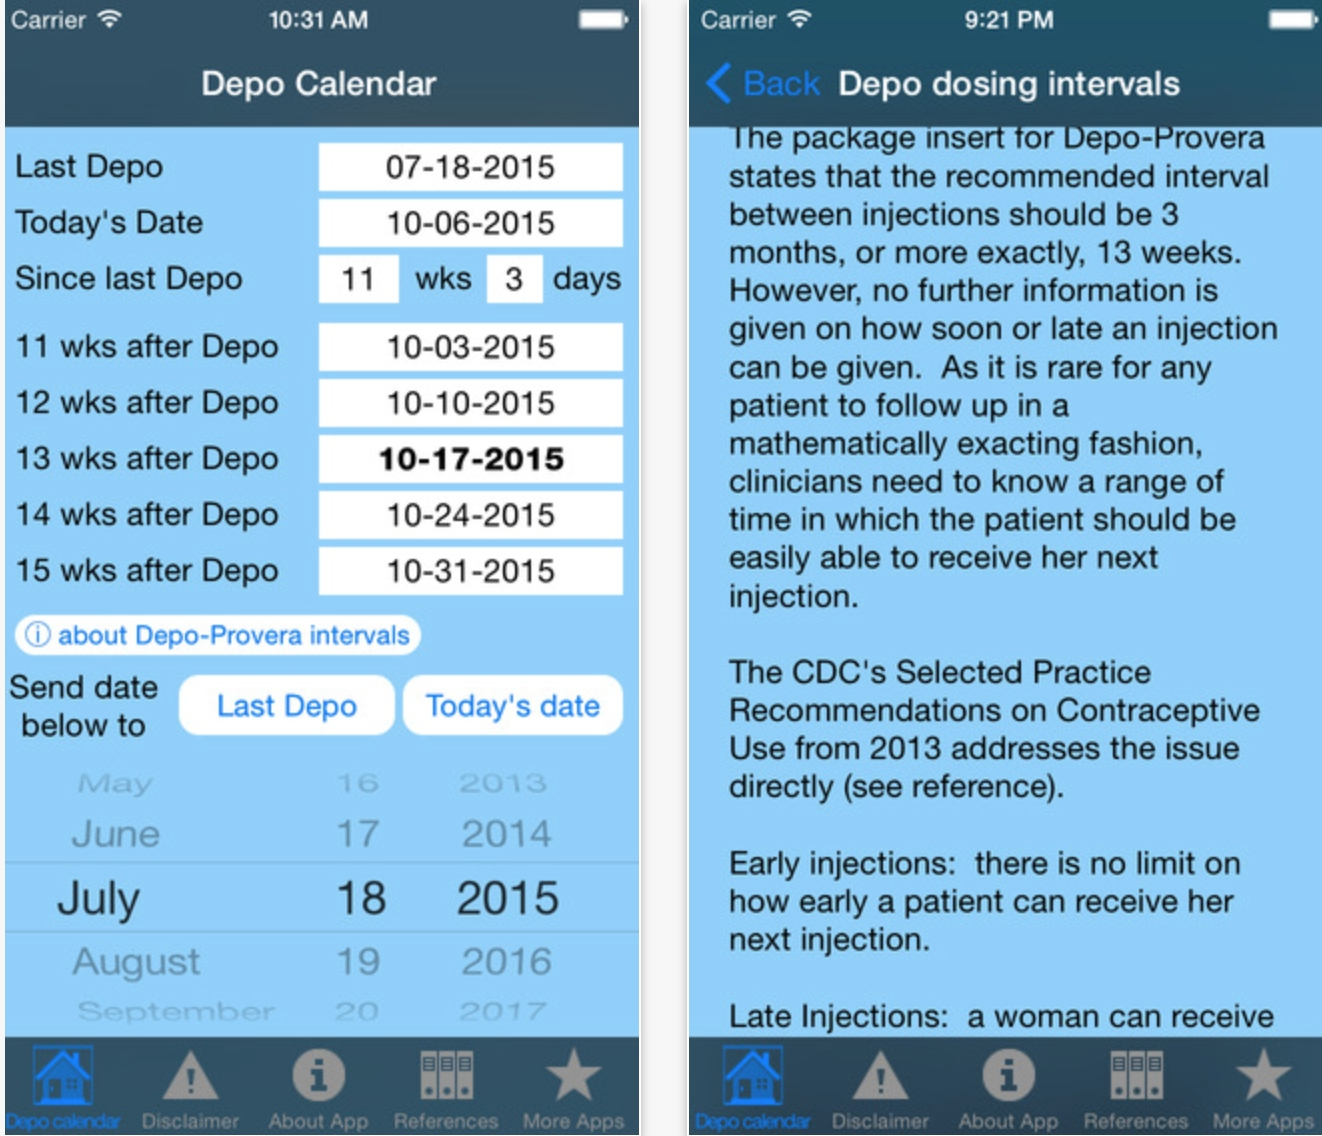 Depo Calendar App Could Significantly Improve Contraception  Depo-Provera Calendar